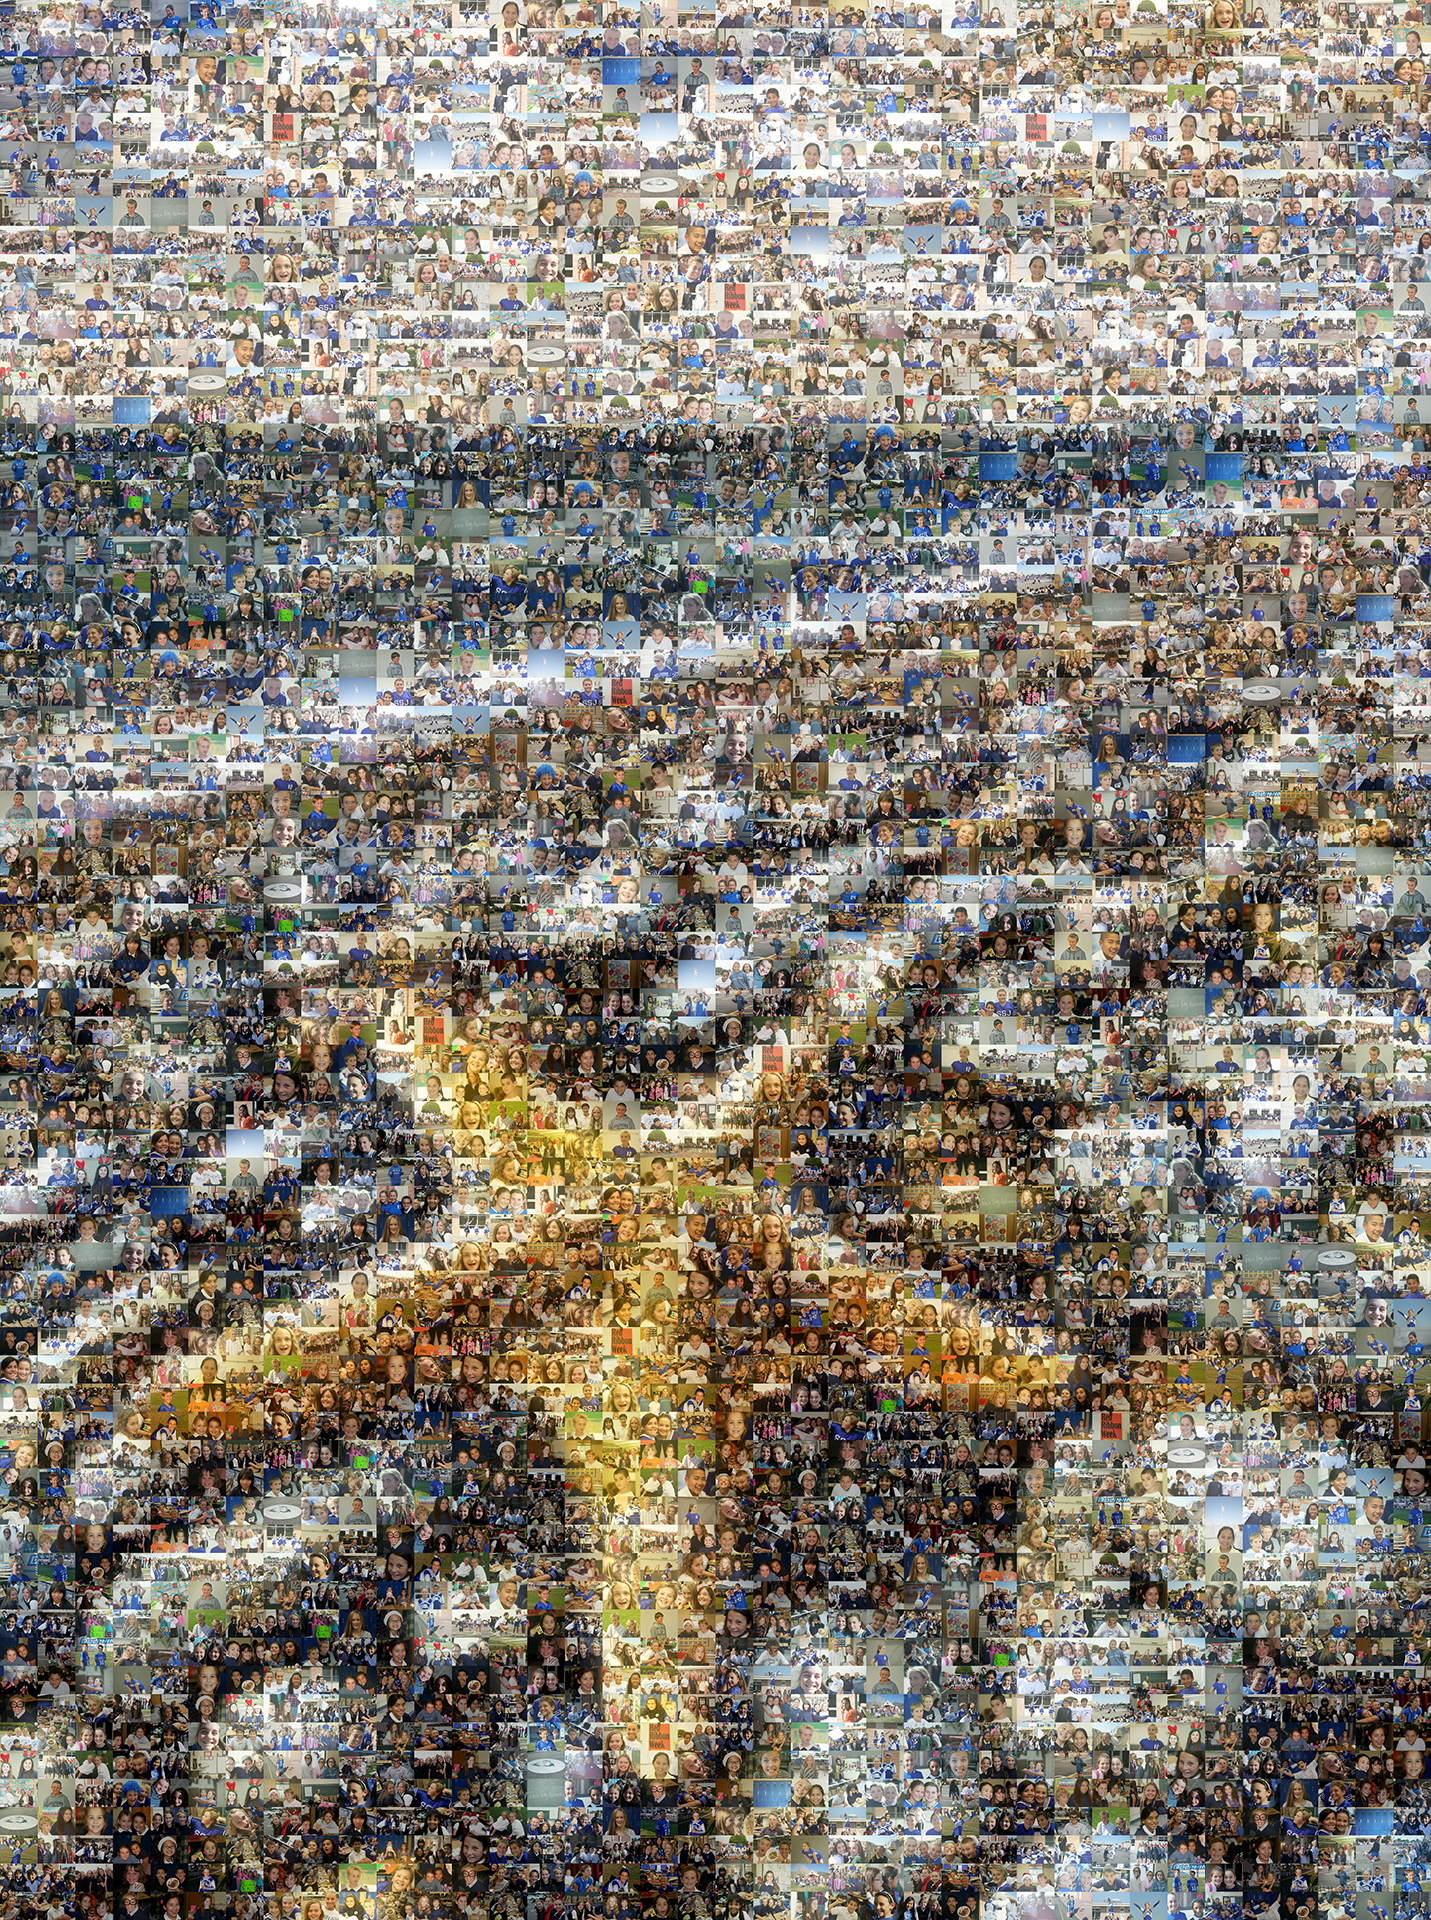 photo mosaic created using 269 photos taken over the school year